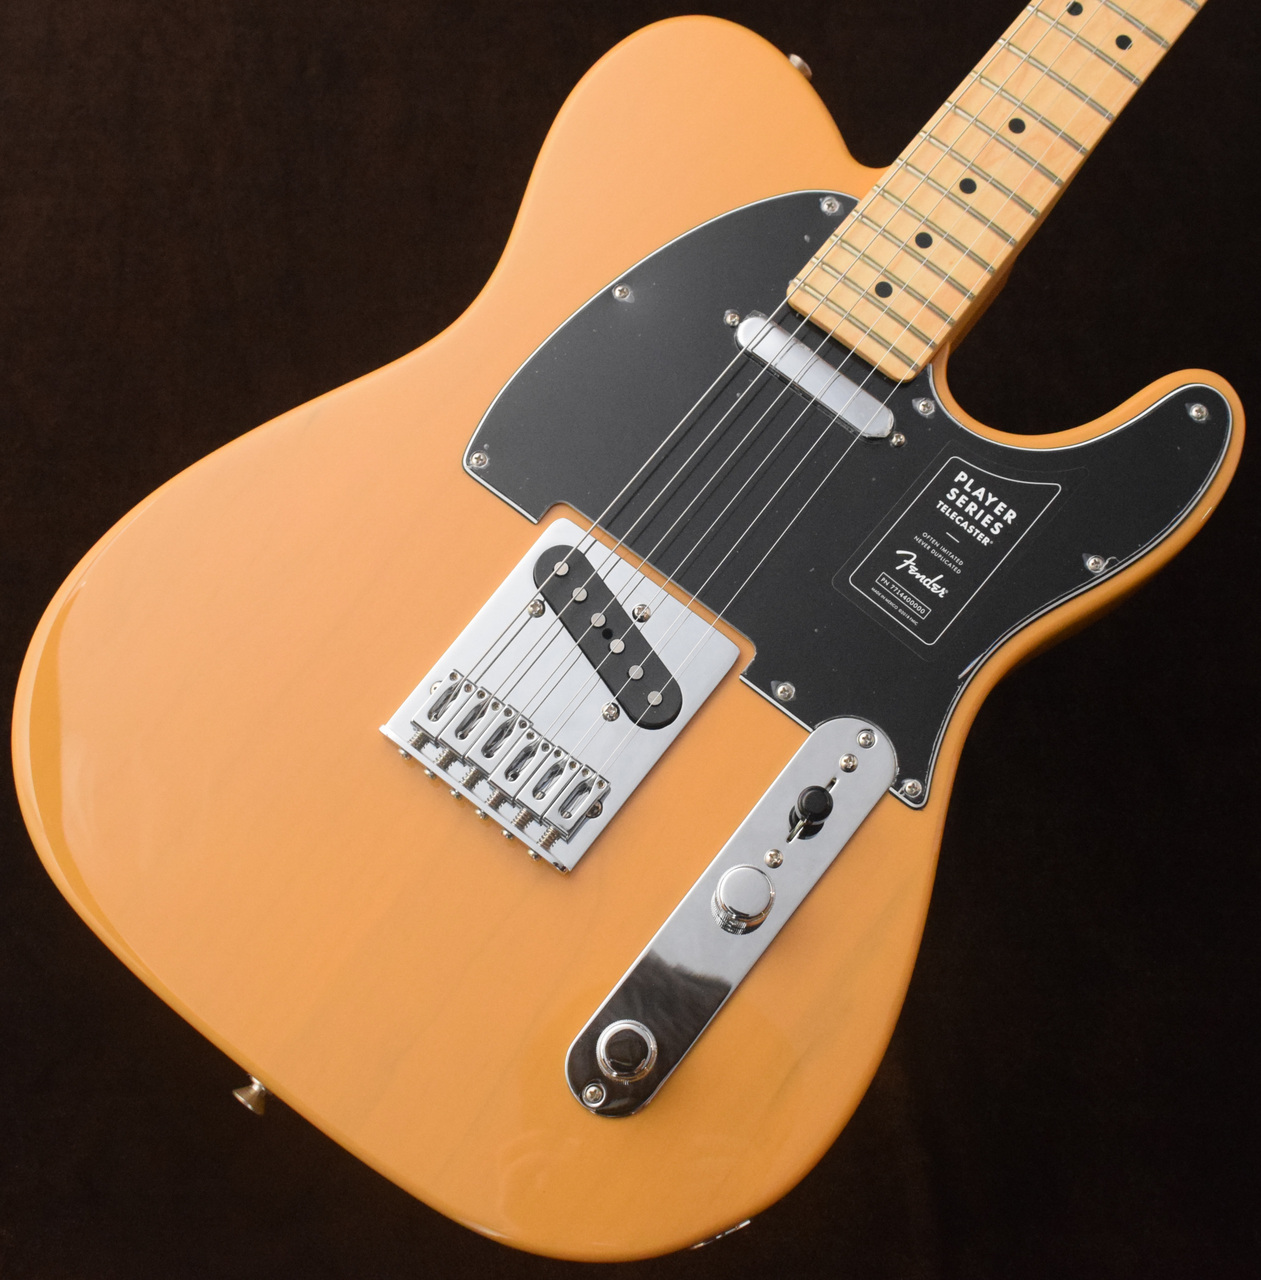 Fender 【買うなら今!】Player Telecaster MN ~Butterscotch Blonde~ ≒3.73kg 【ケースアップグレード!】